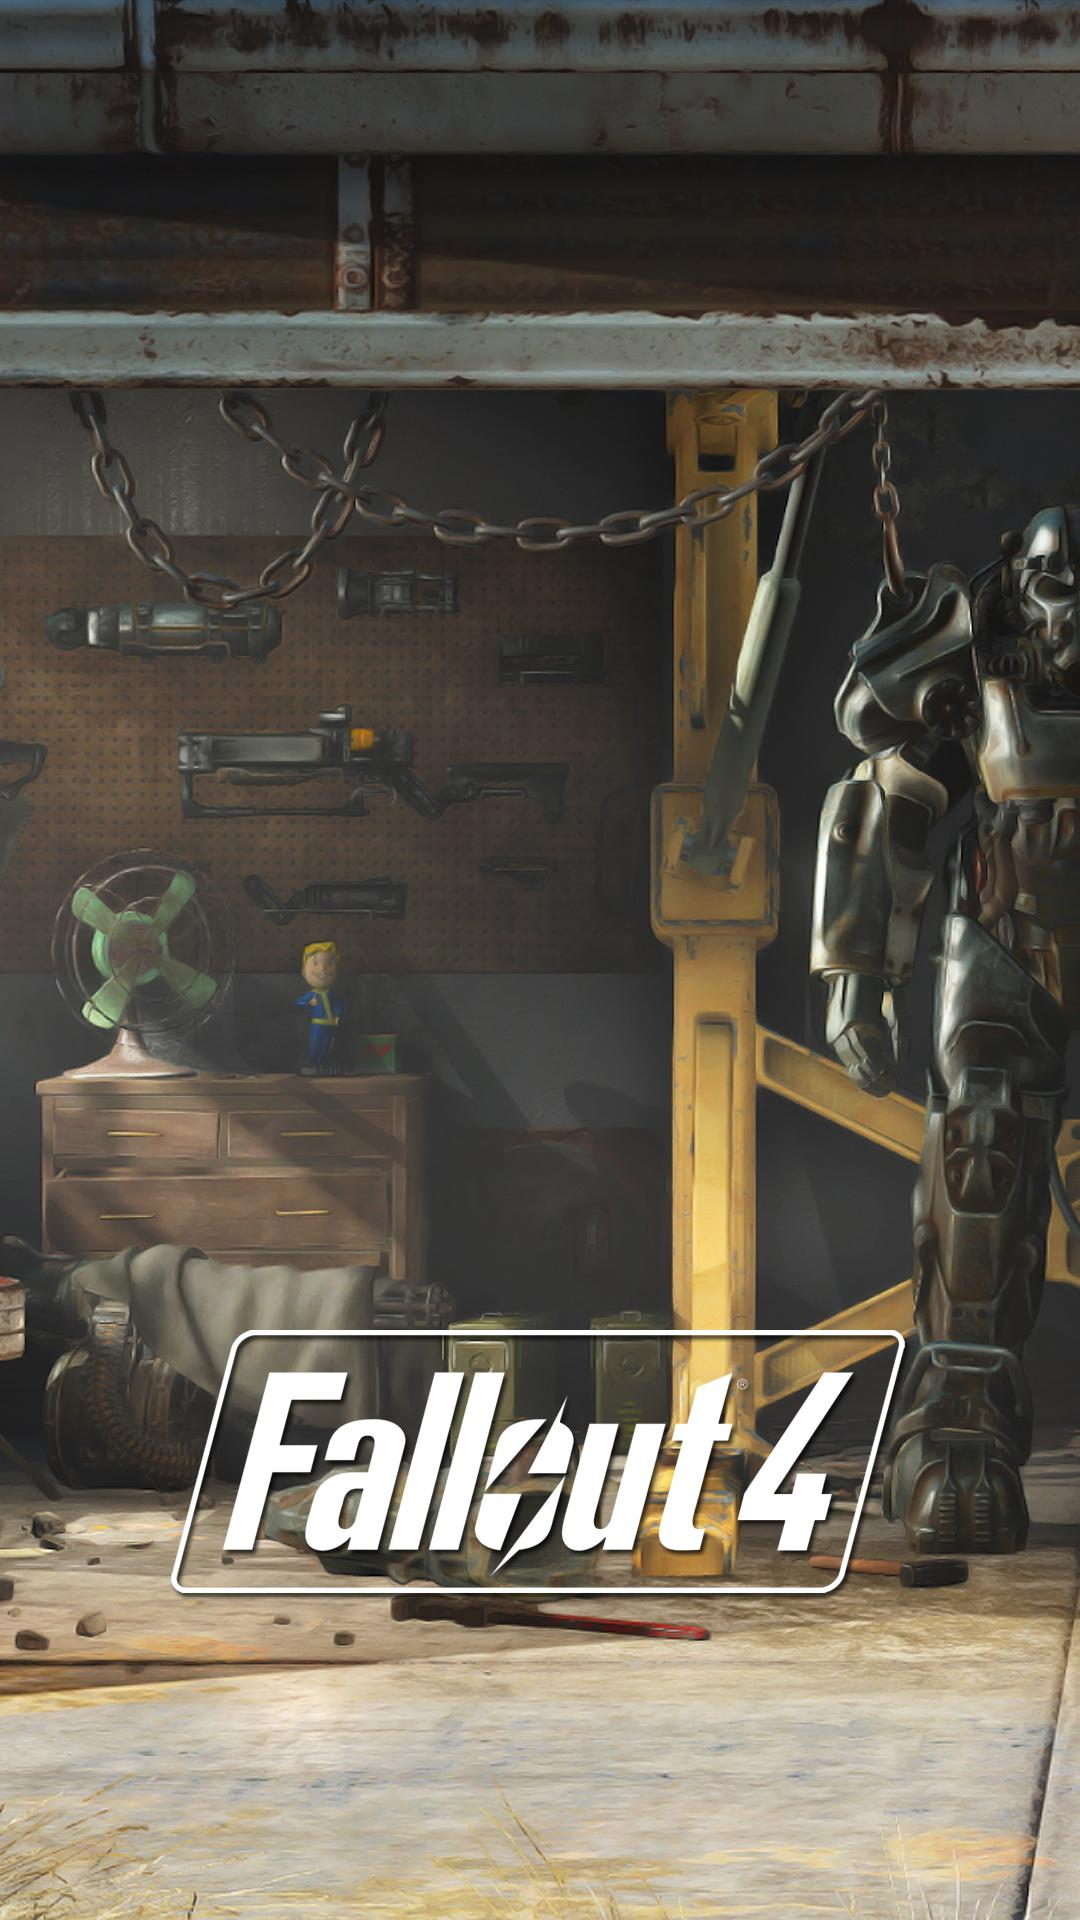 1 18 Fallout 4 Wallpapers For Mobile